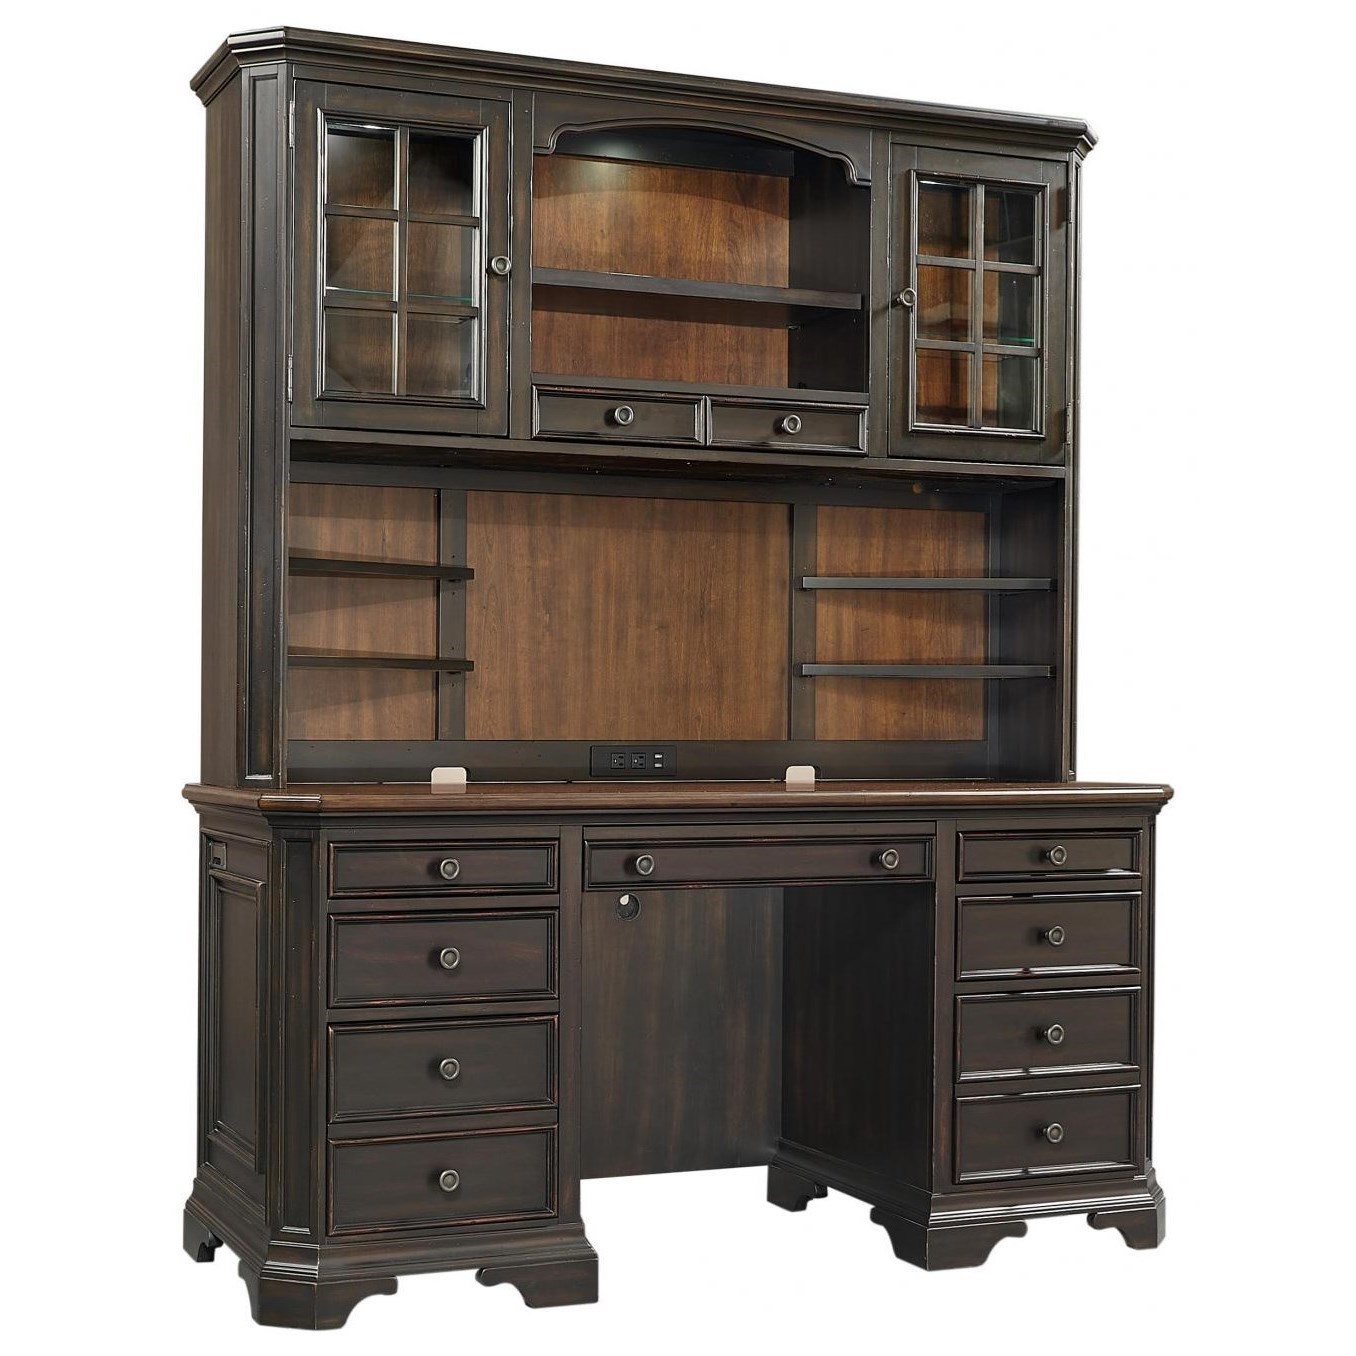 Transitional 8-Drawer Credenza Desk and Hutch with Adjustable/Removable Shelving and AC/USB Ports